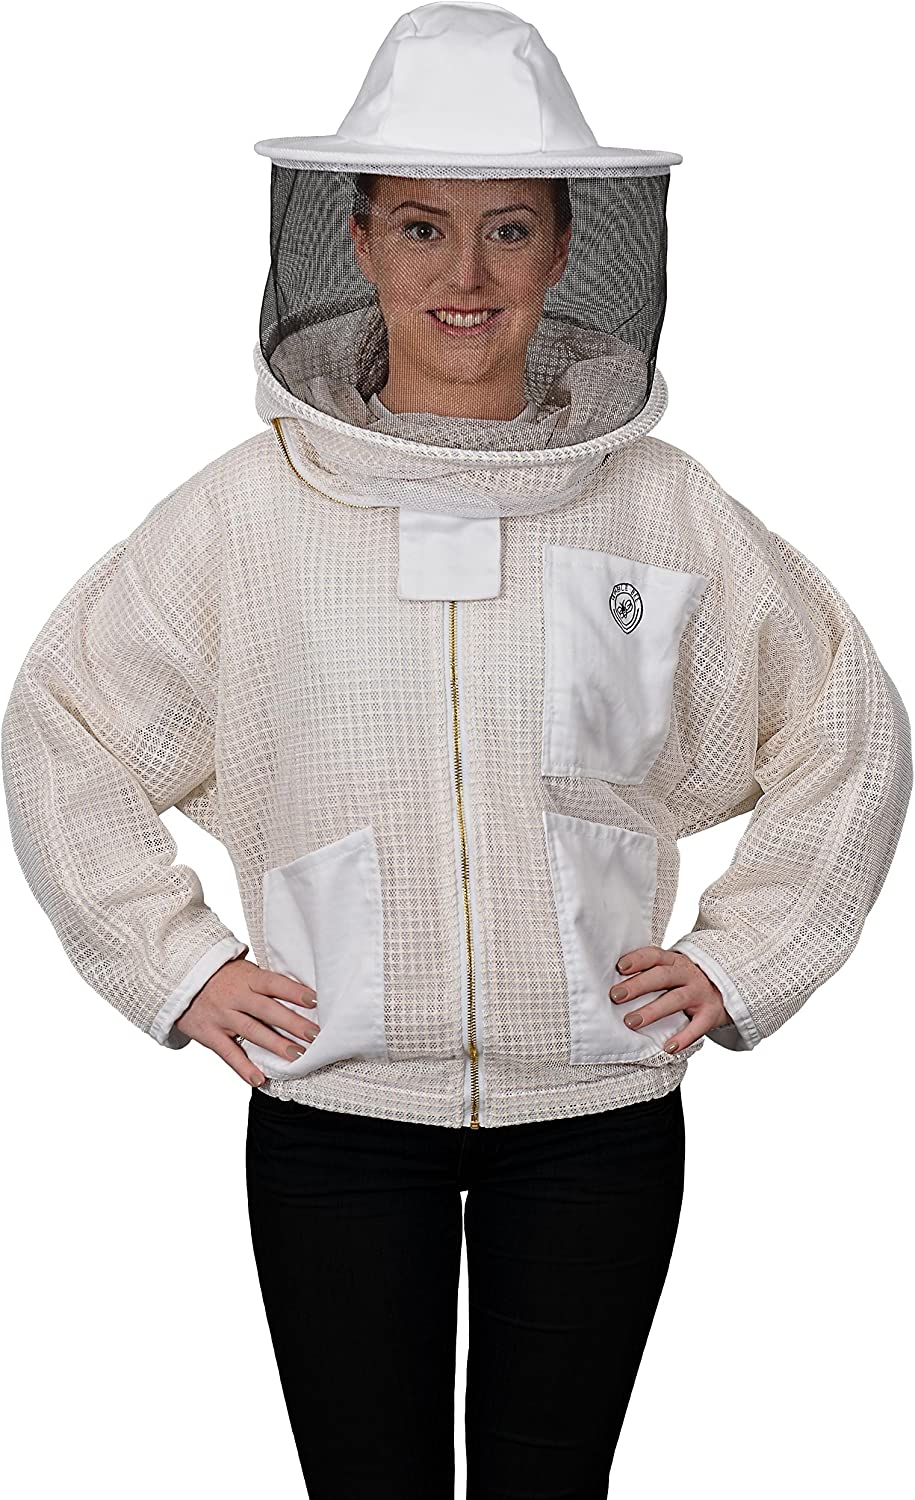 Humble Bee 320XS Aerated Beekeeping Jacket with Round Veil (X Small)